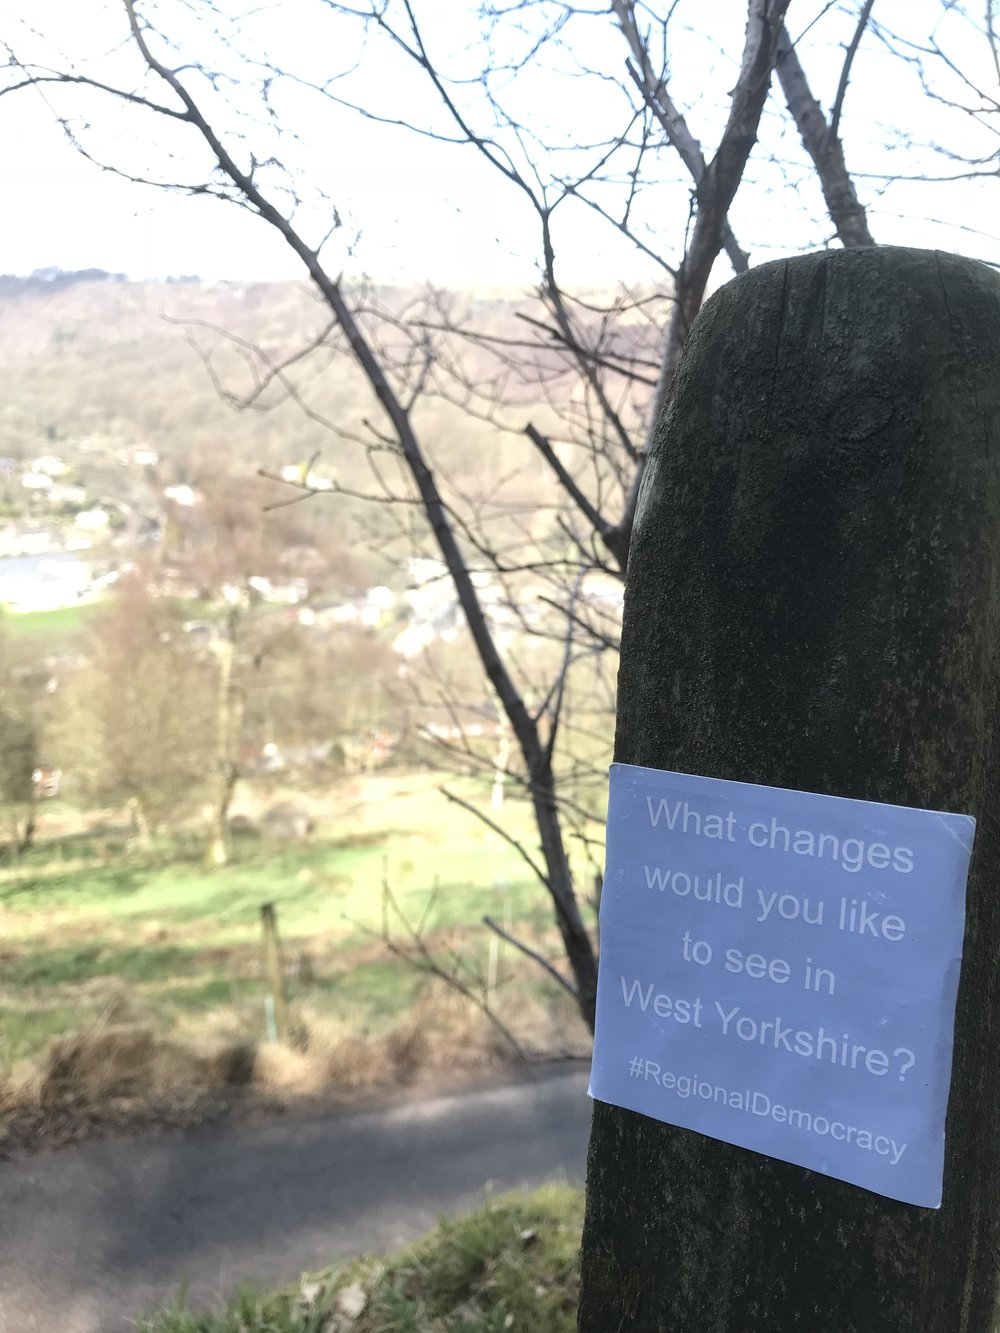 West Yorkshire changes sticker.jpg